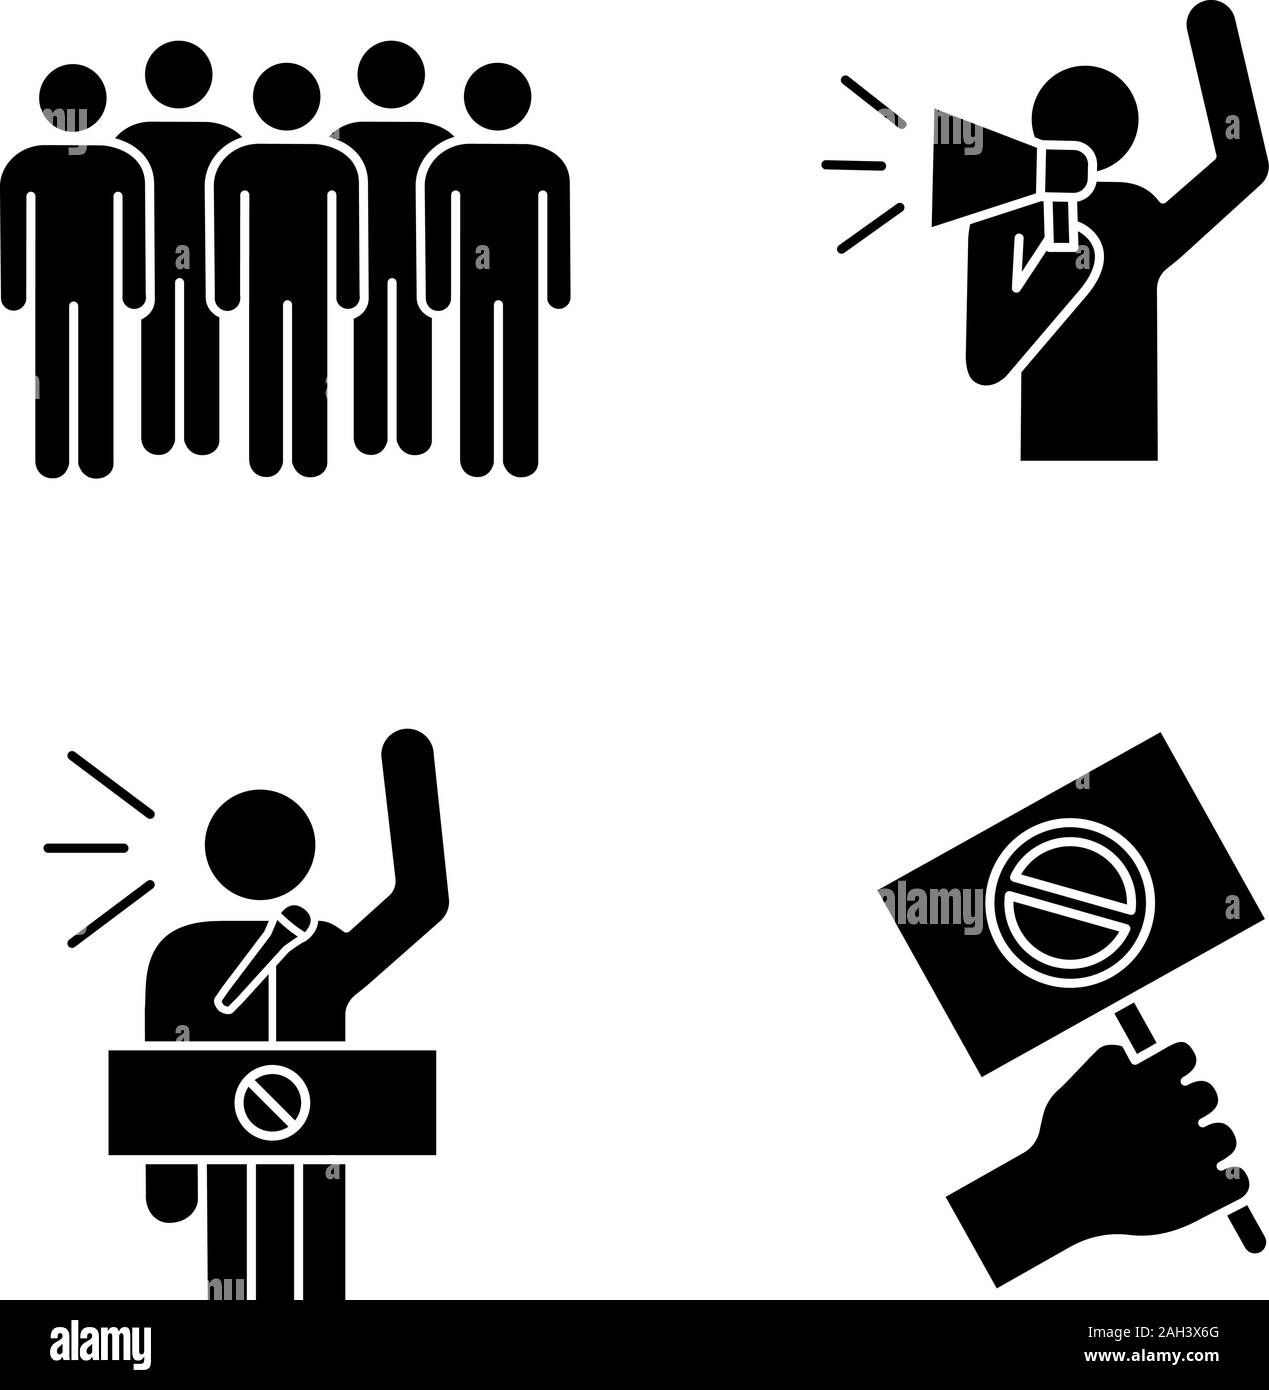 Protest action glyph icons set. Meeting, protester, protest banner, speech. Silhouette symbols. Vector isolated illustration Stock Vector